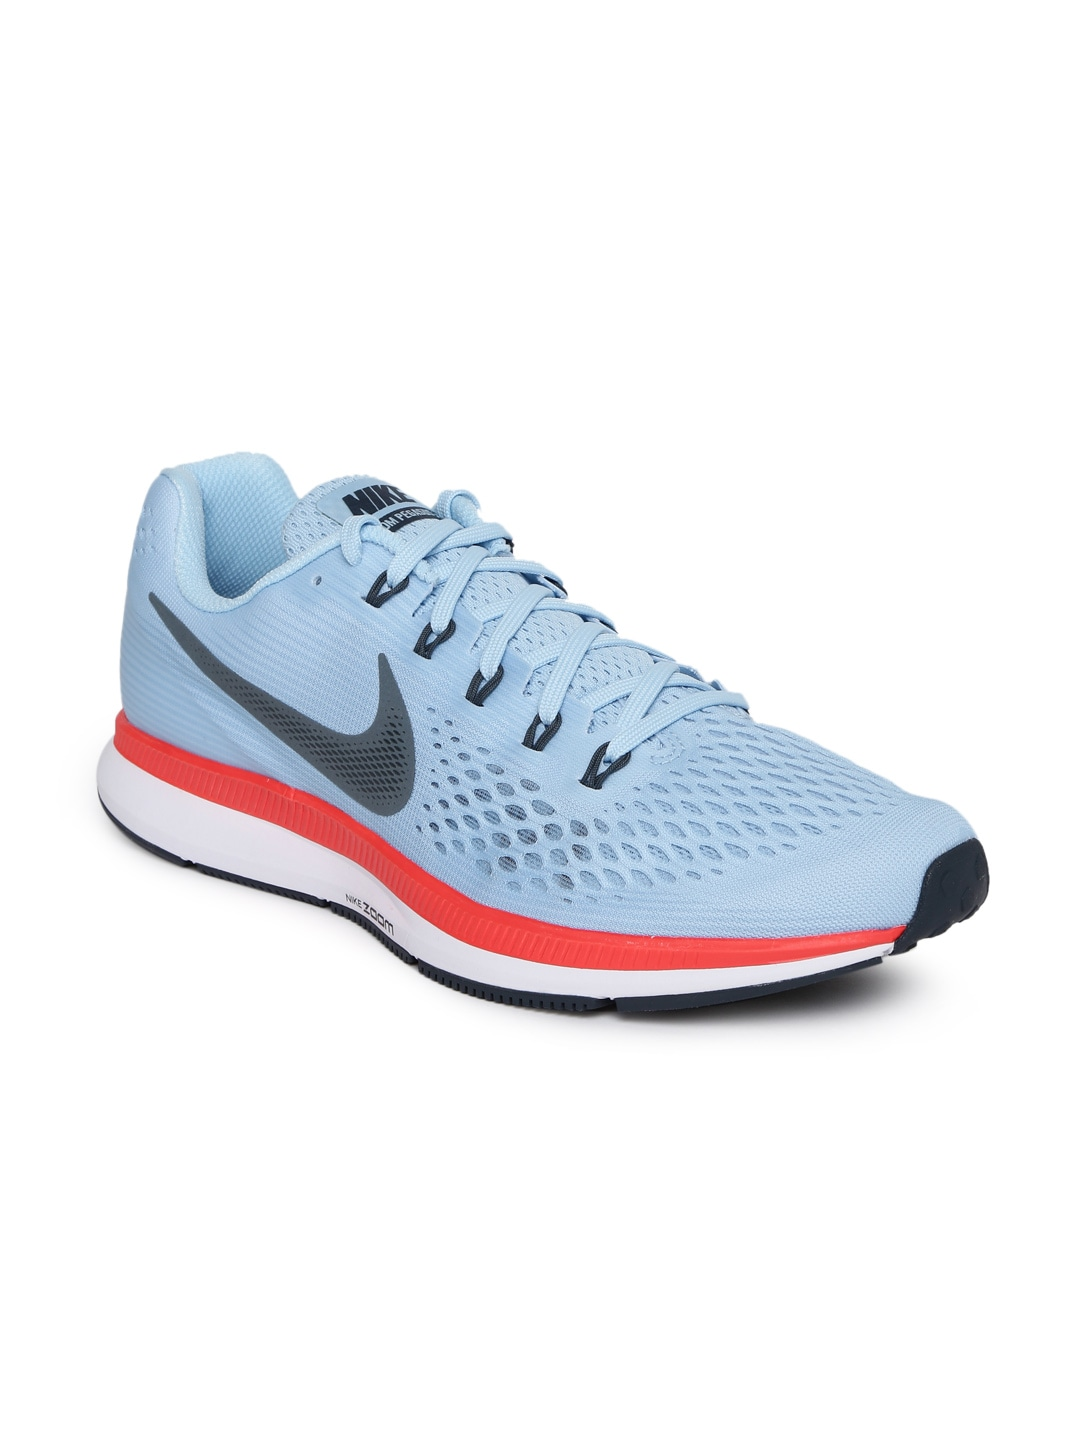 5e0d307dad6d9 Pegasus 34 - Buy Pegasus 34 online in India